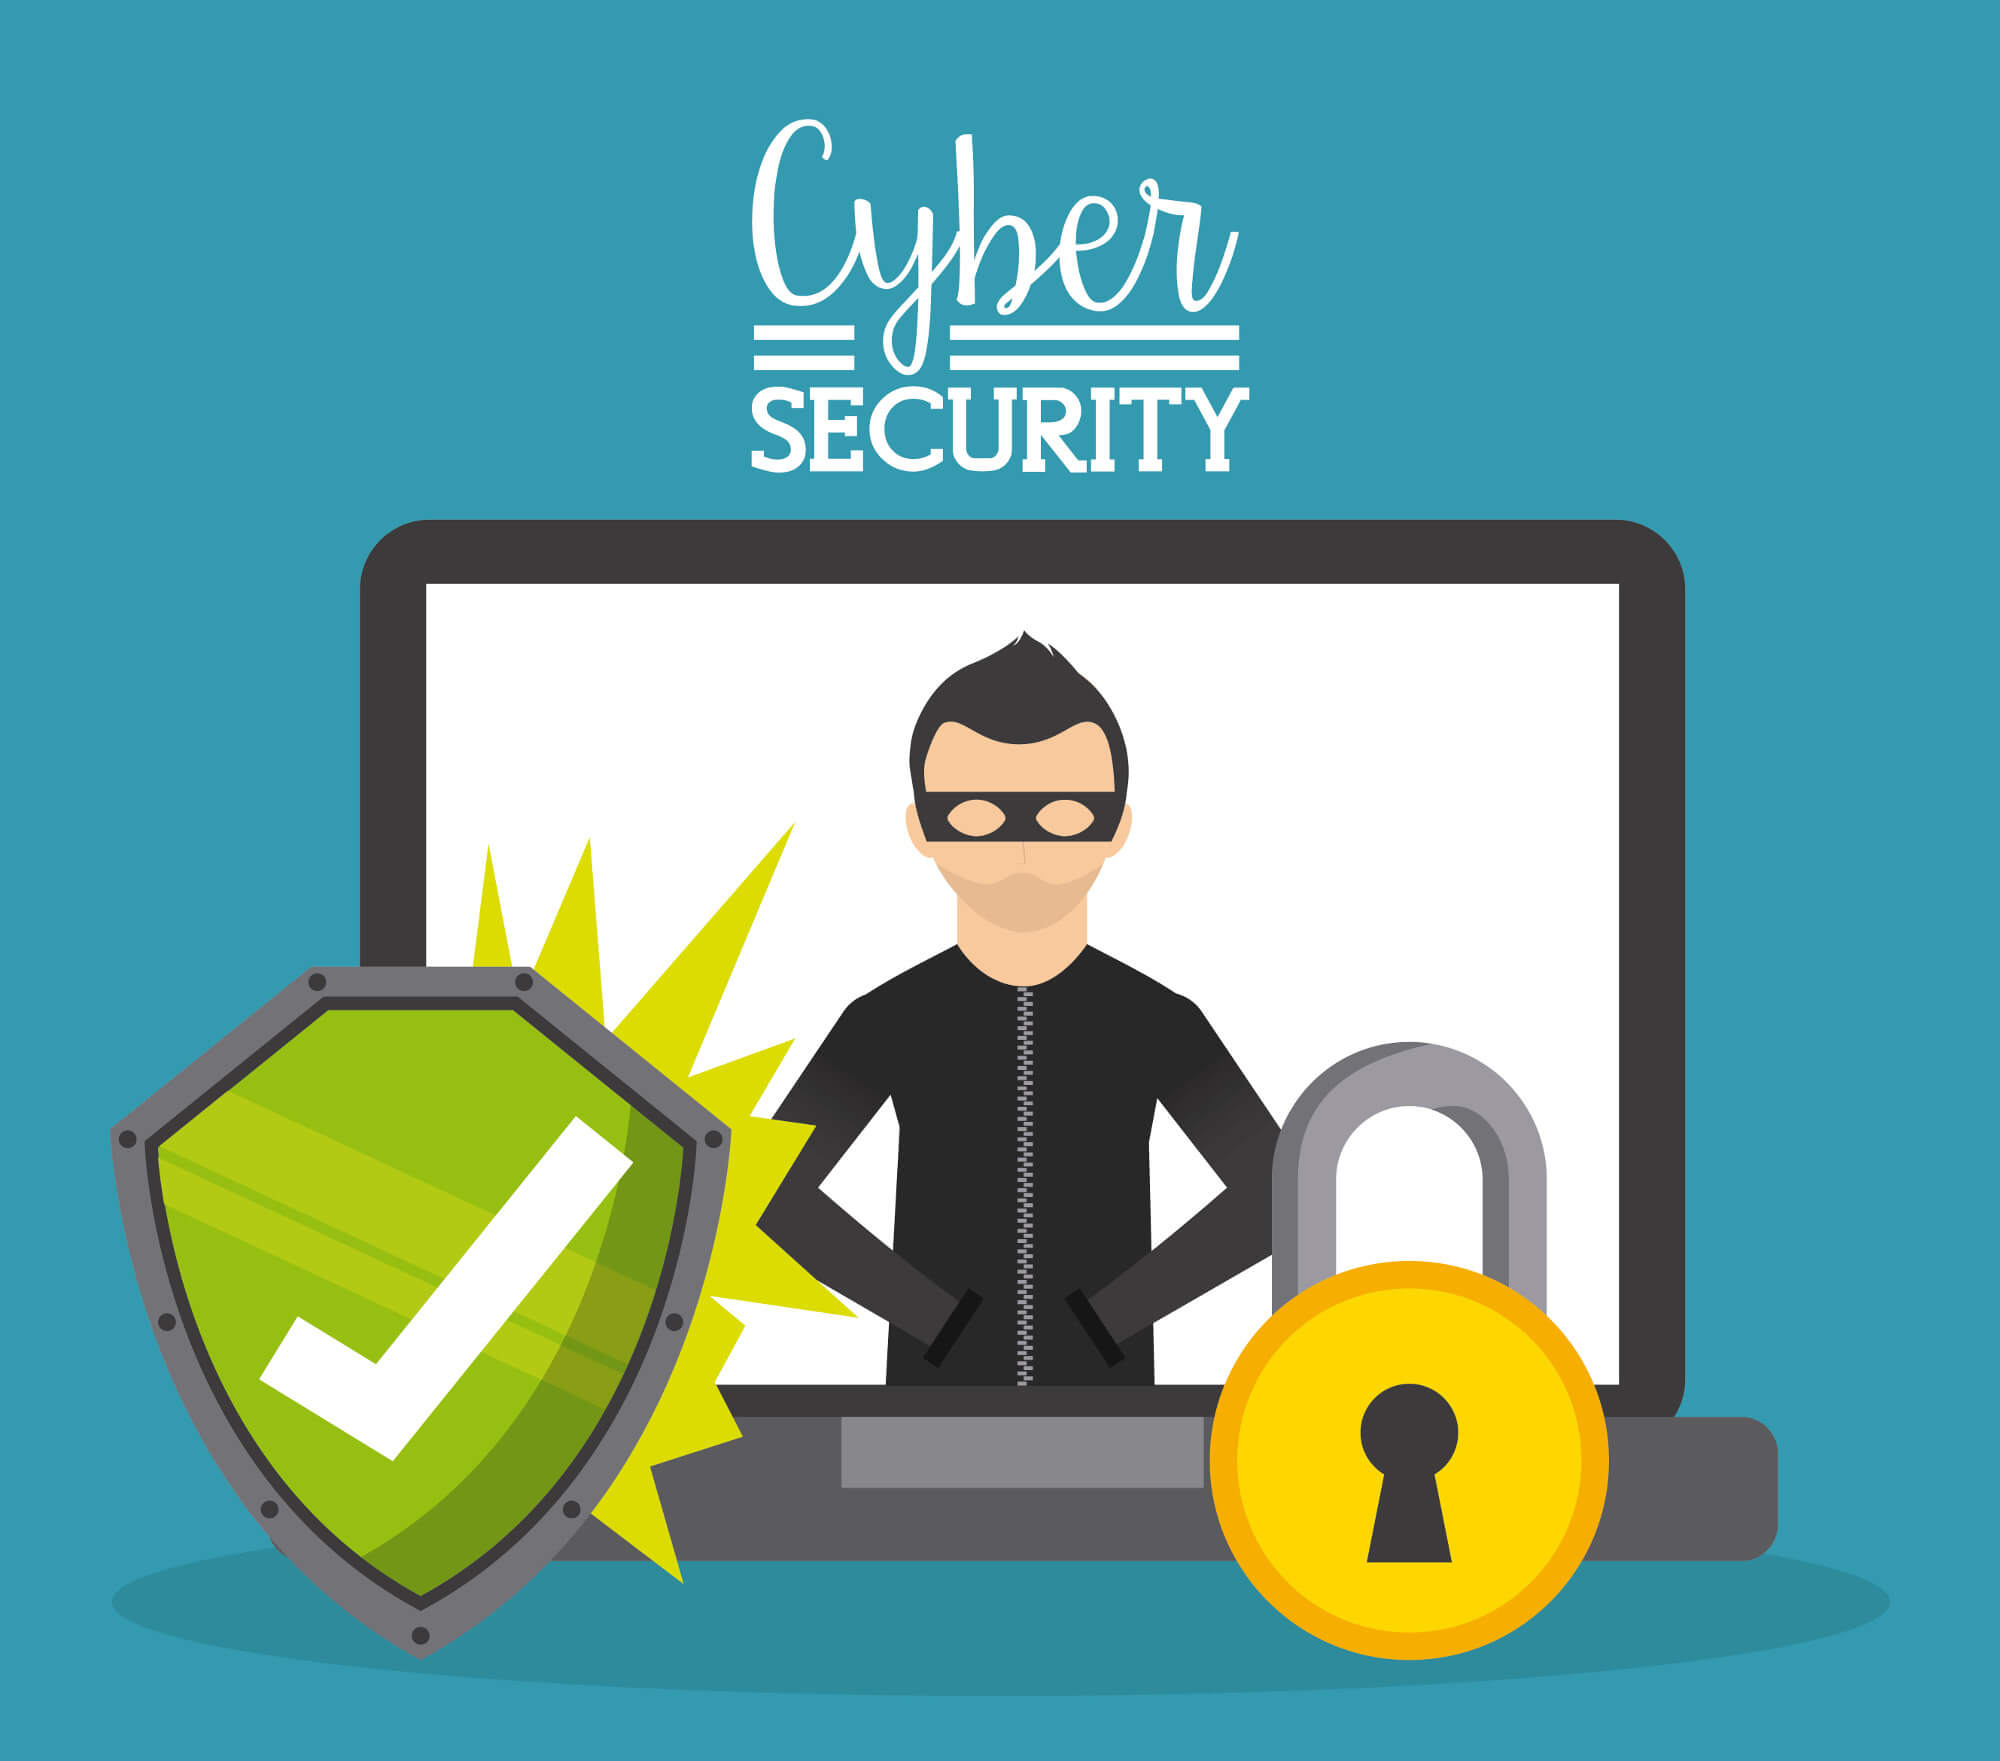 Cyber Security in text above a laptop with the image of a masked criminal, as well as a green check mark and a gold lock